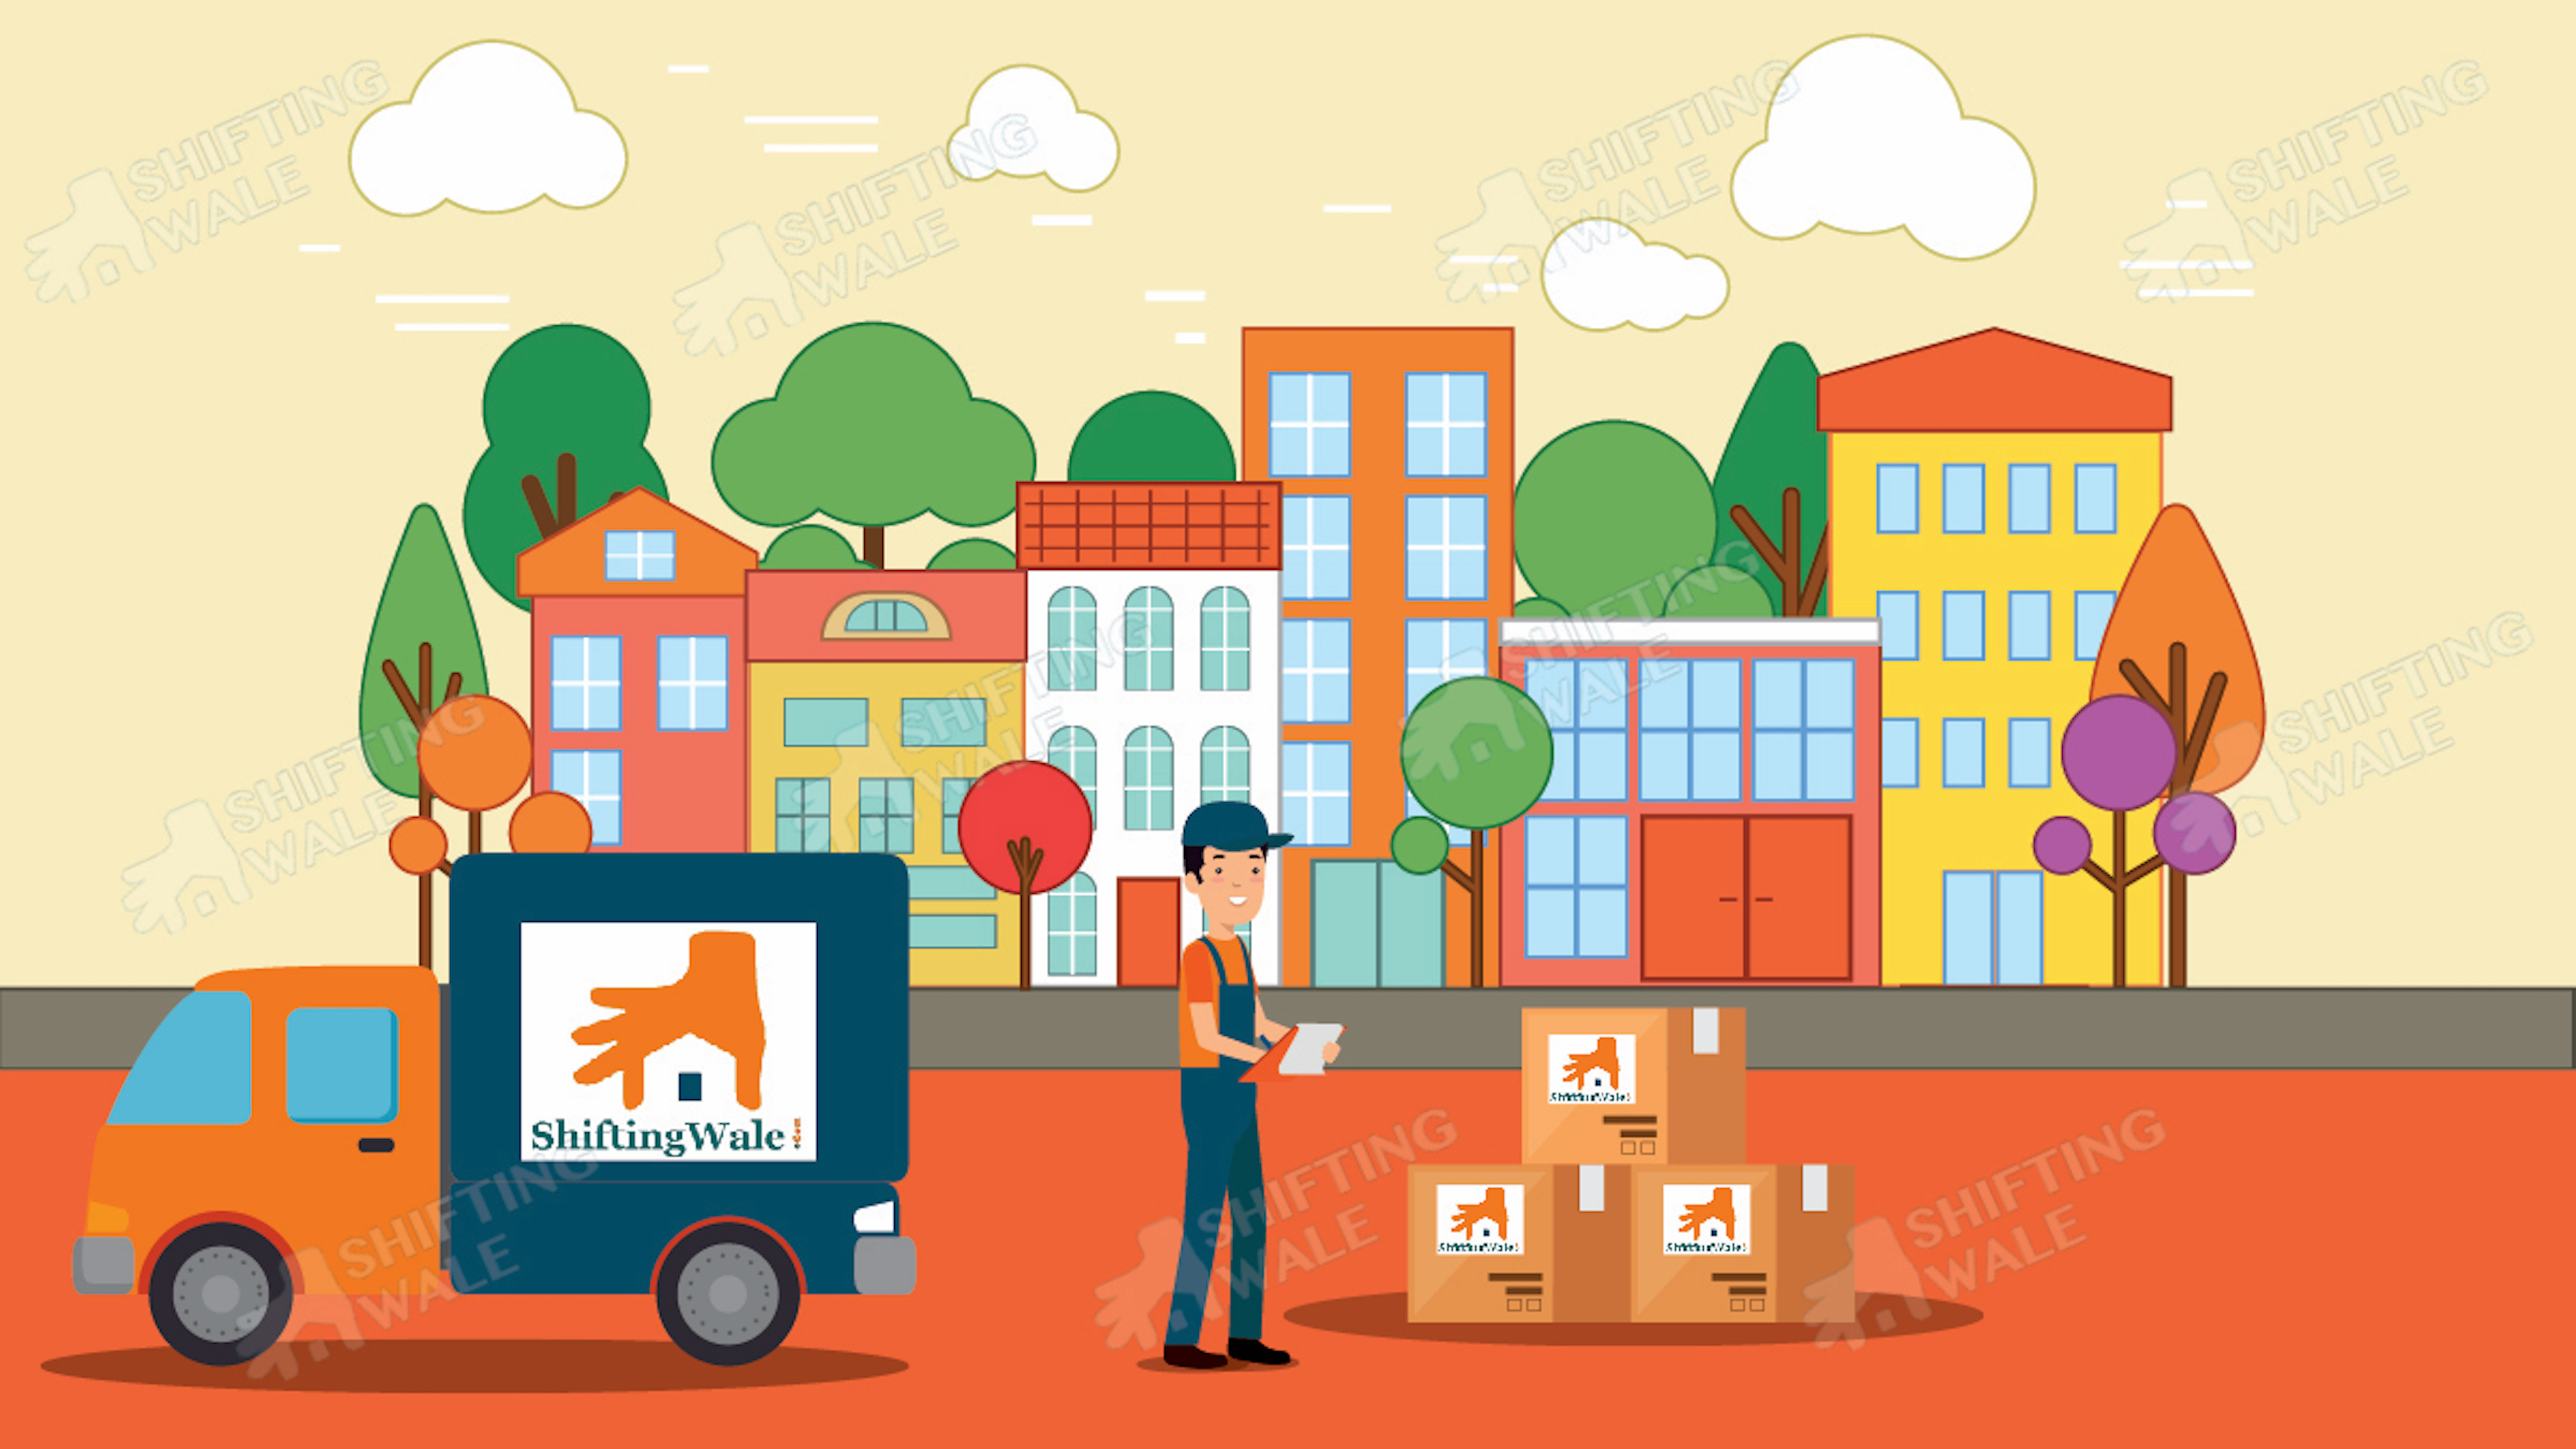 Lucknow to Guwahati Trusted Movers & Packers Get Trusted Relocation